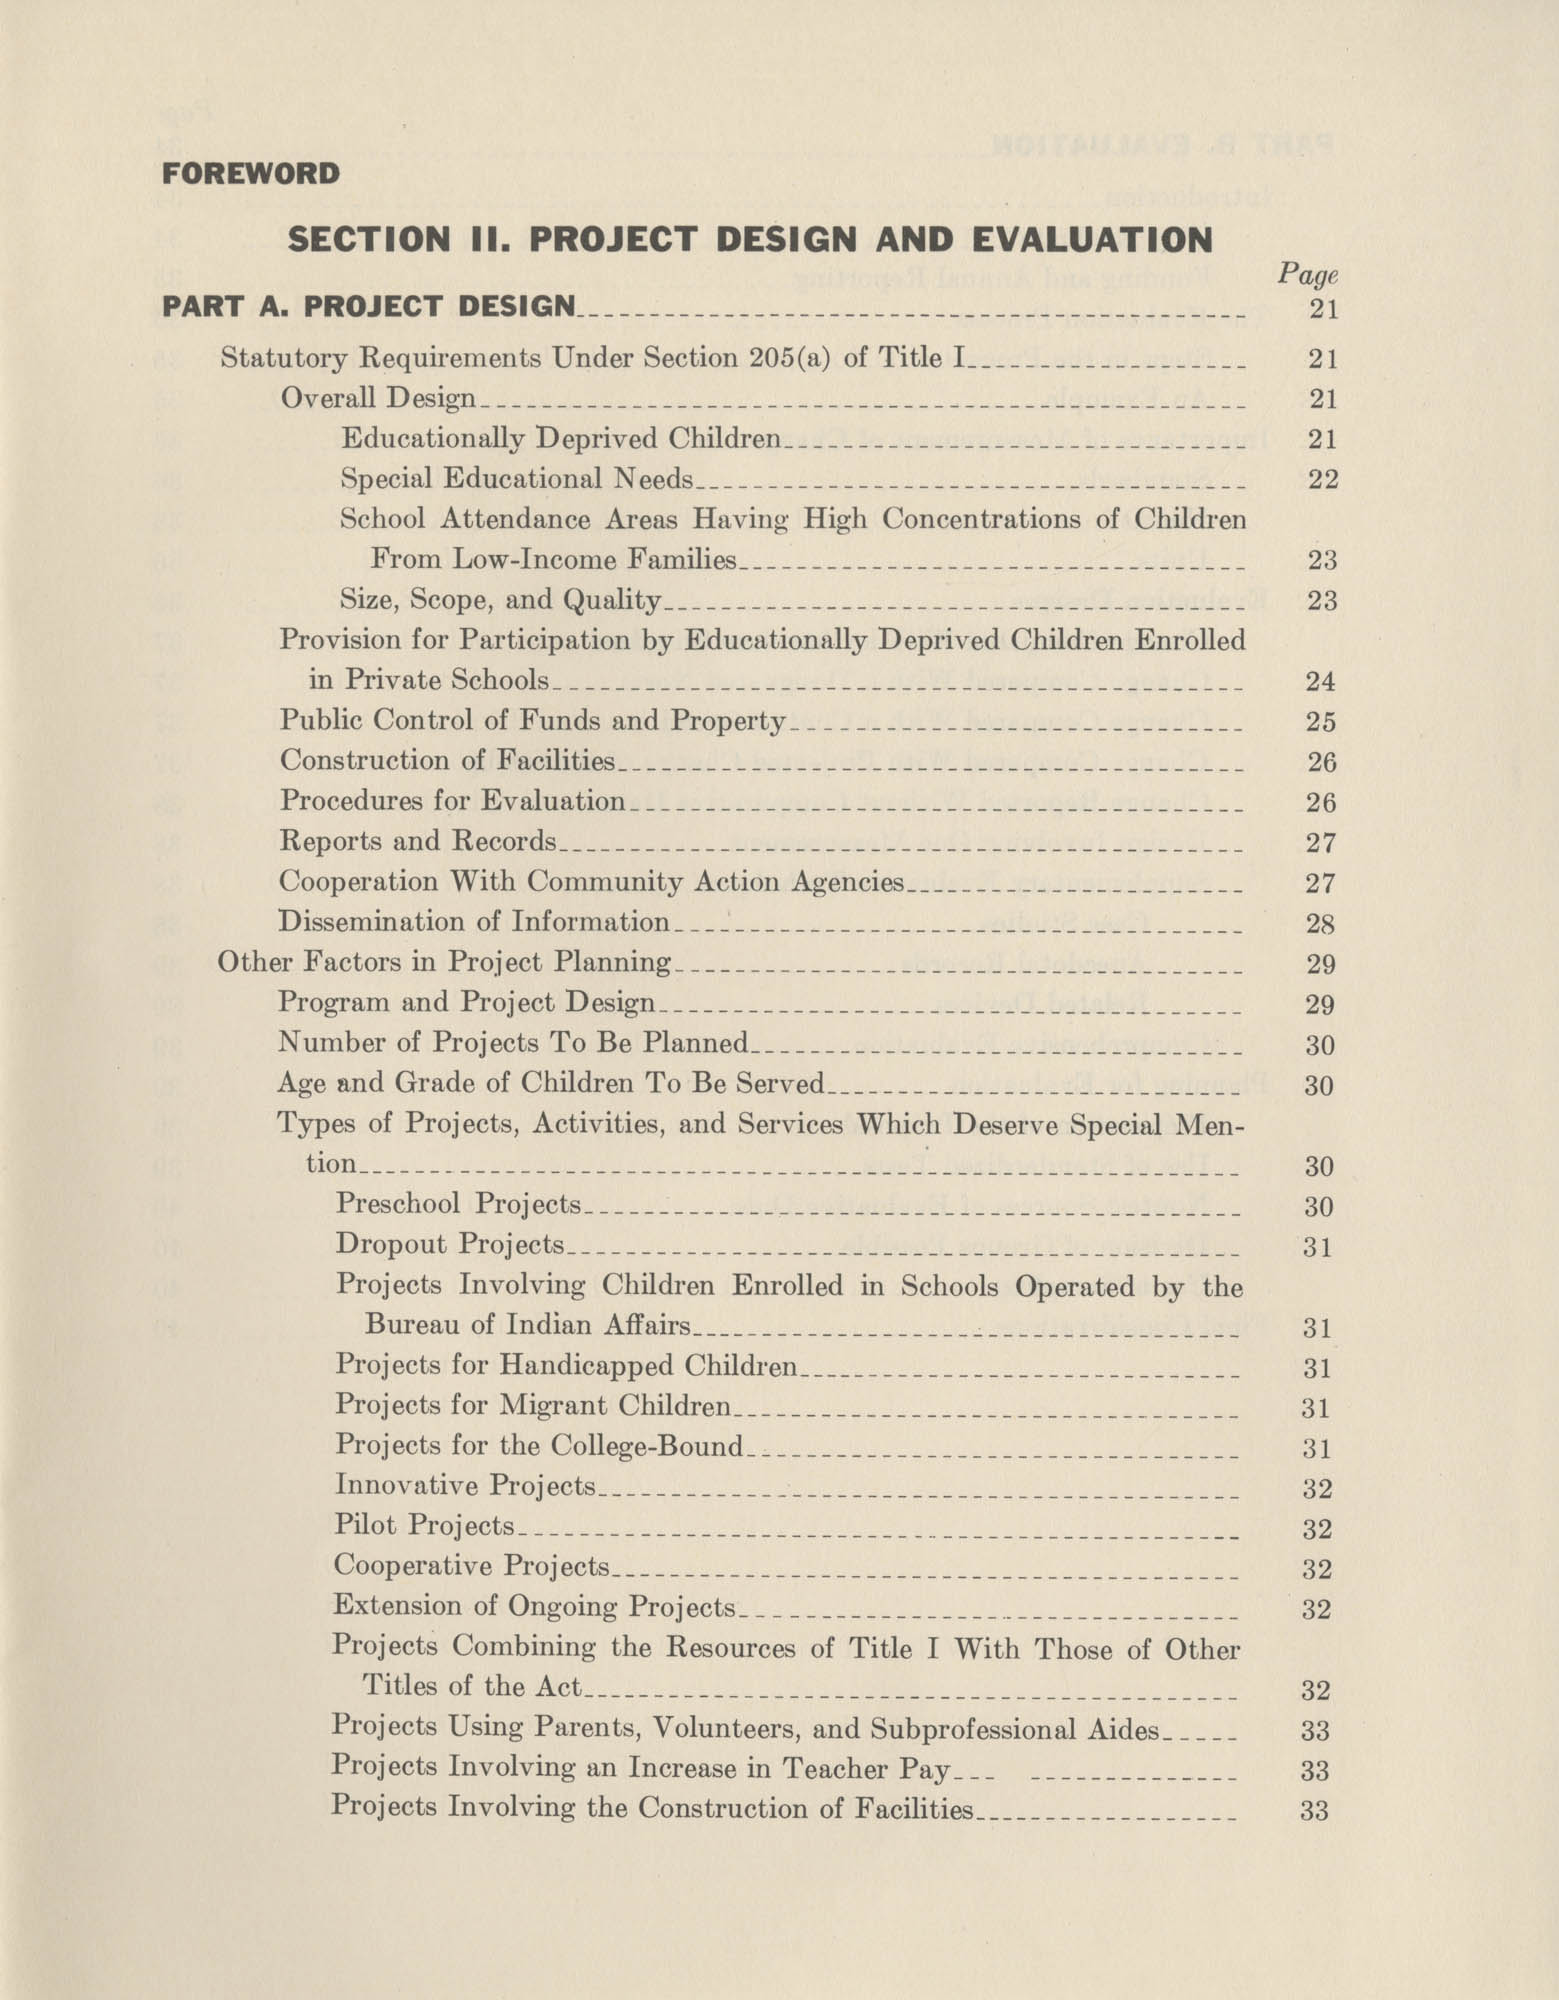 Guidelines: Special Programs for Educationally Deprived Children, Section II, Contents Page 1